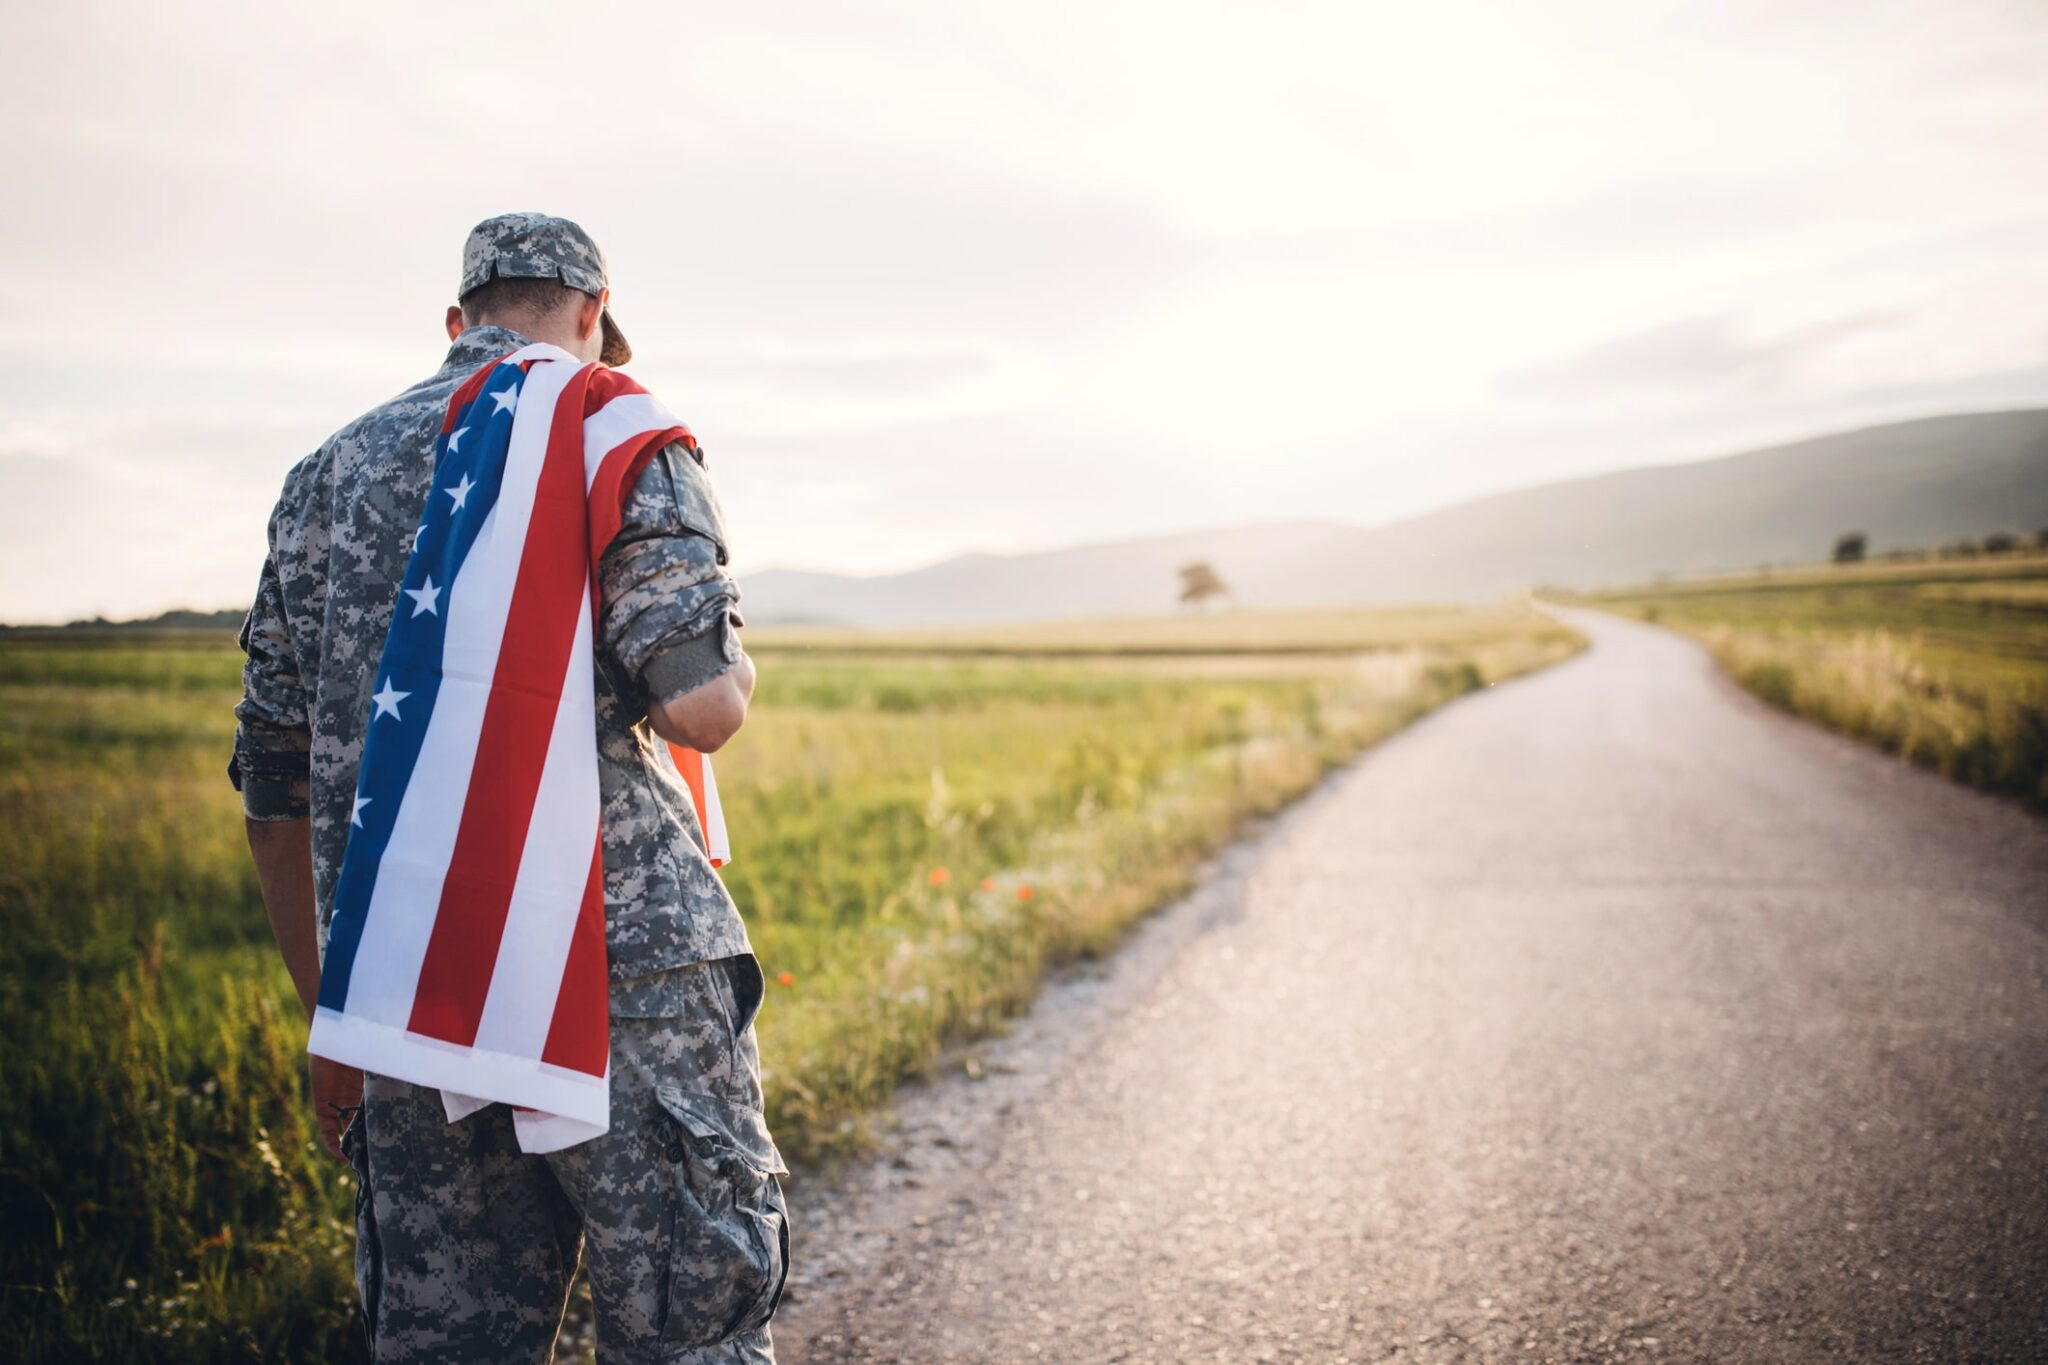 A solider walks down a road alone carrying the U.S Flag on his back.